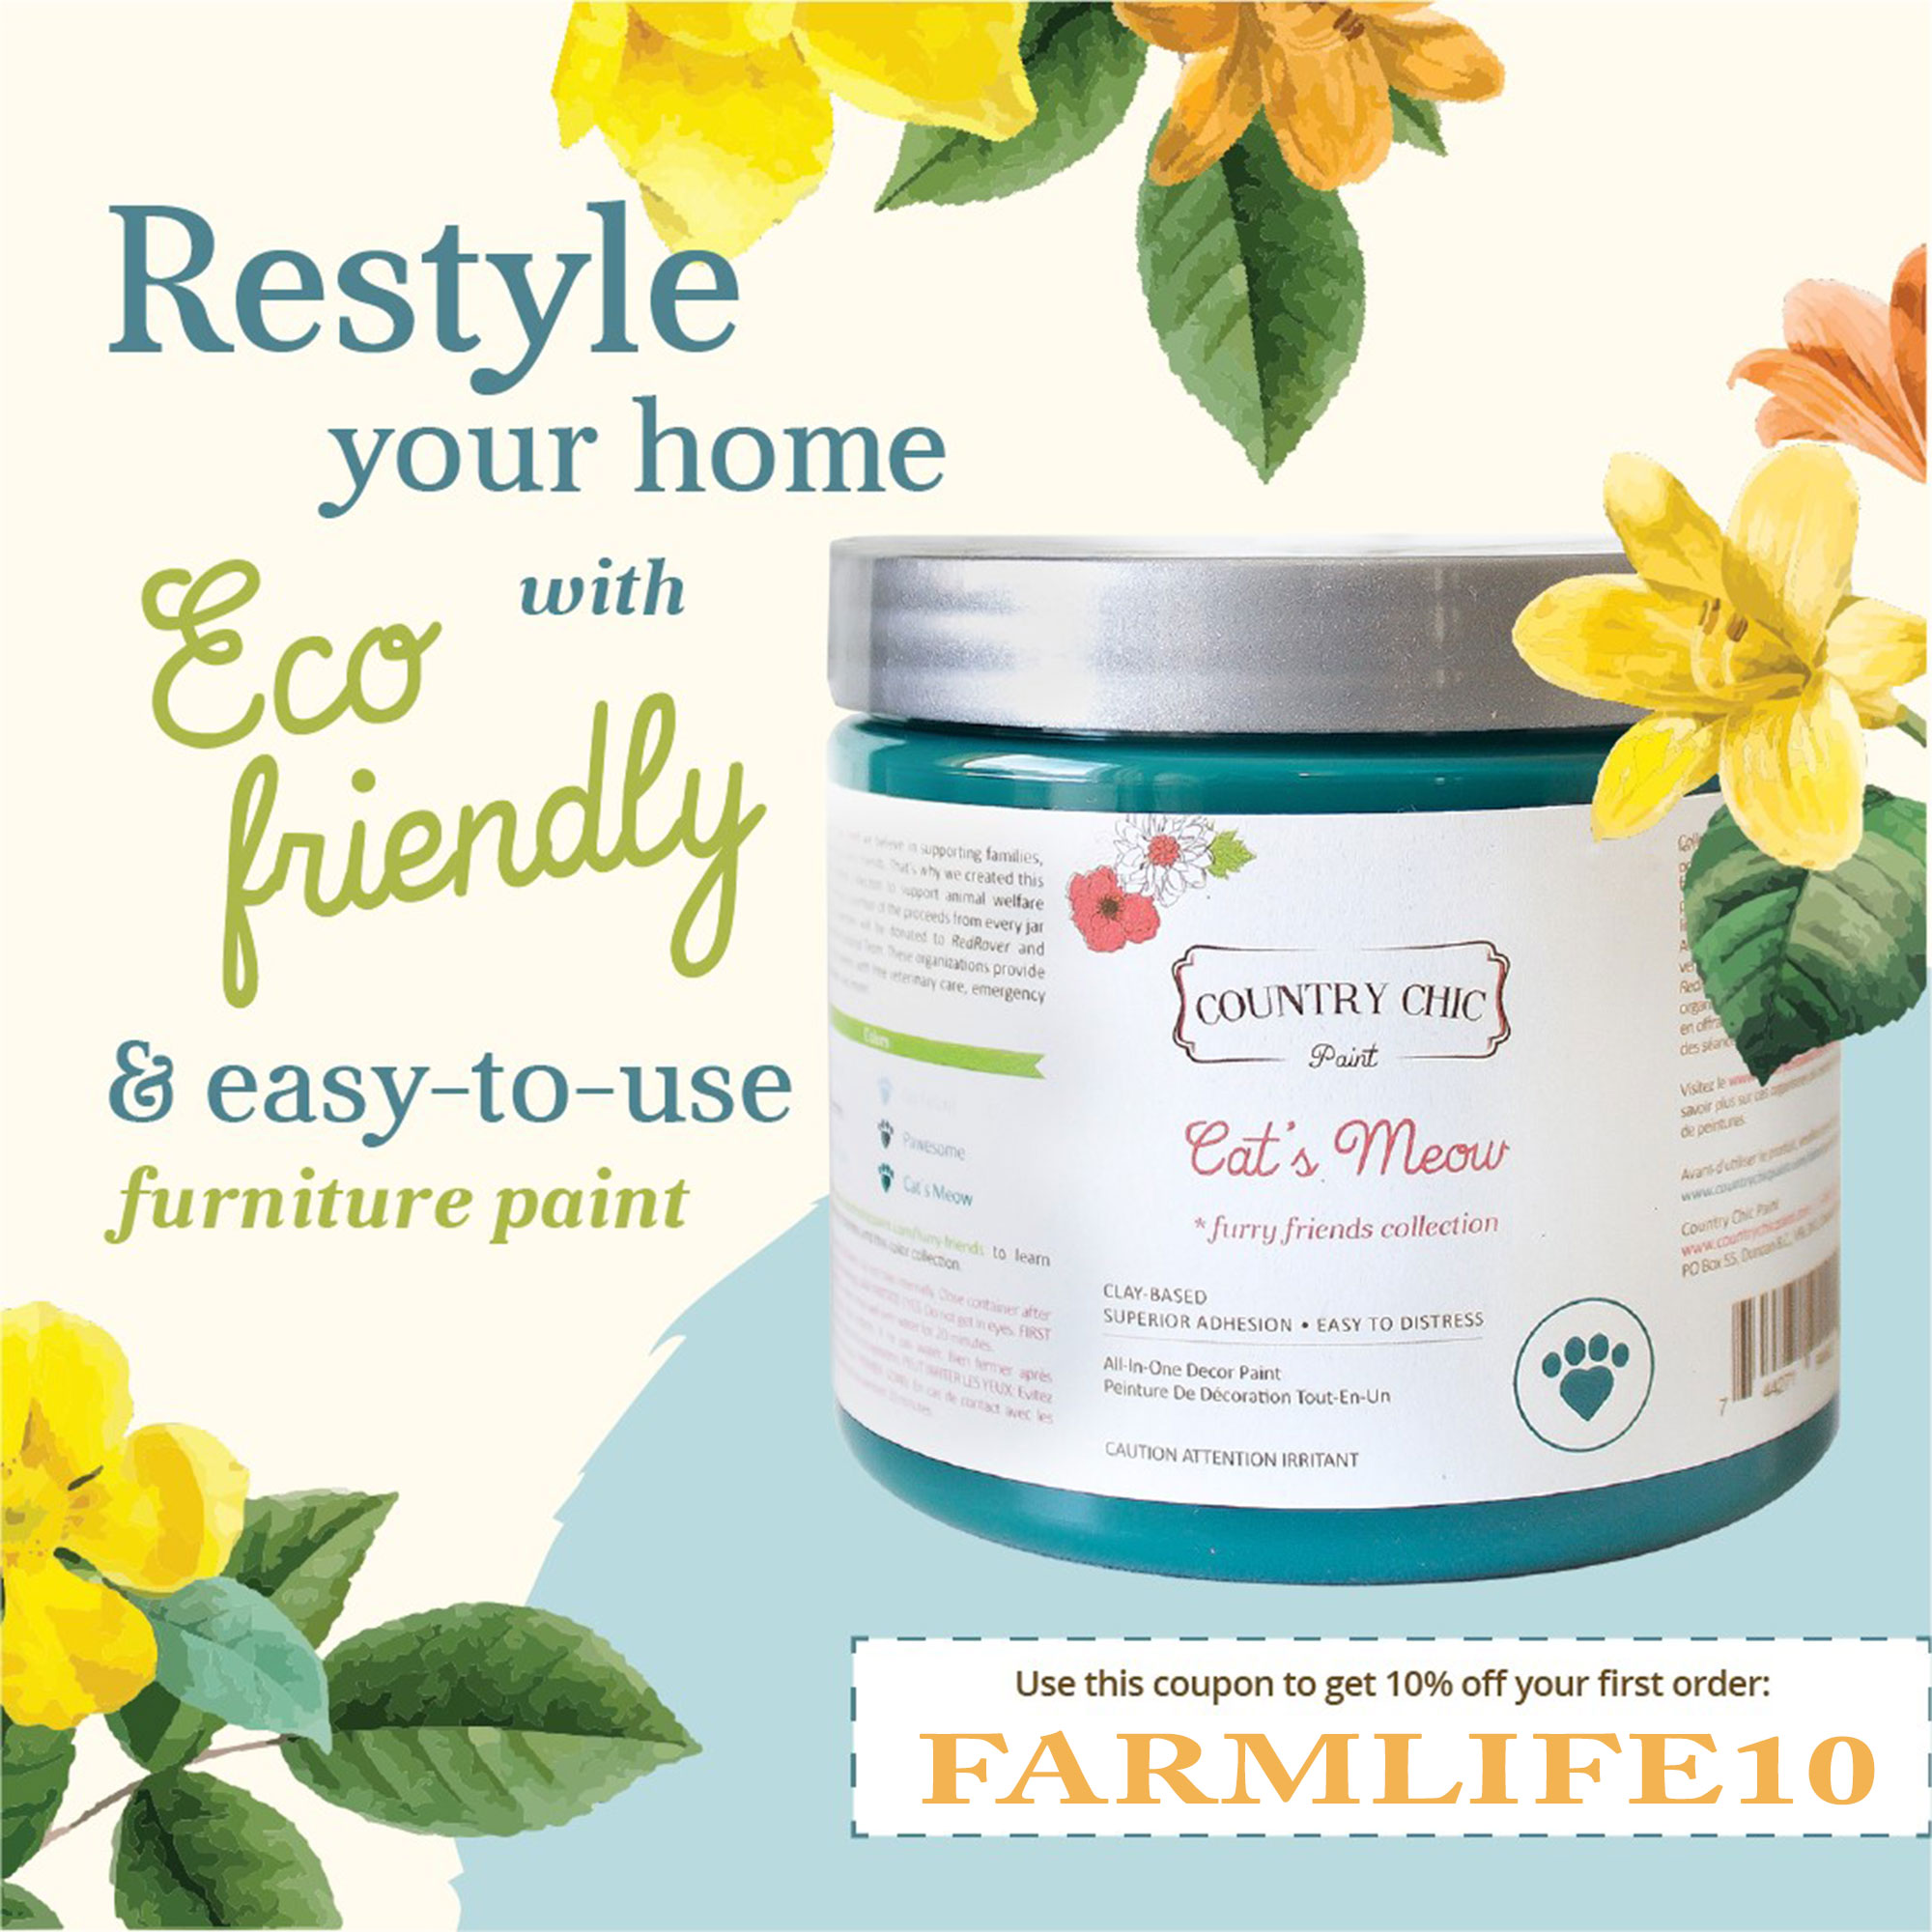 COUPONCODE-FARMLIFEBESTLIFE_JUL2019